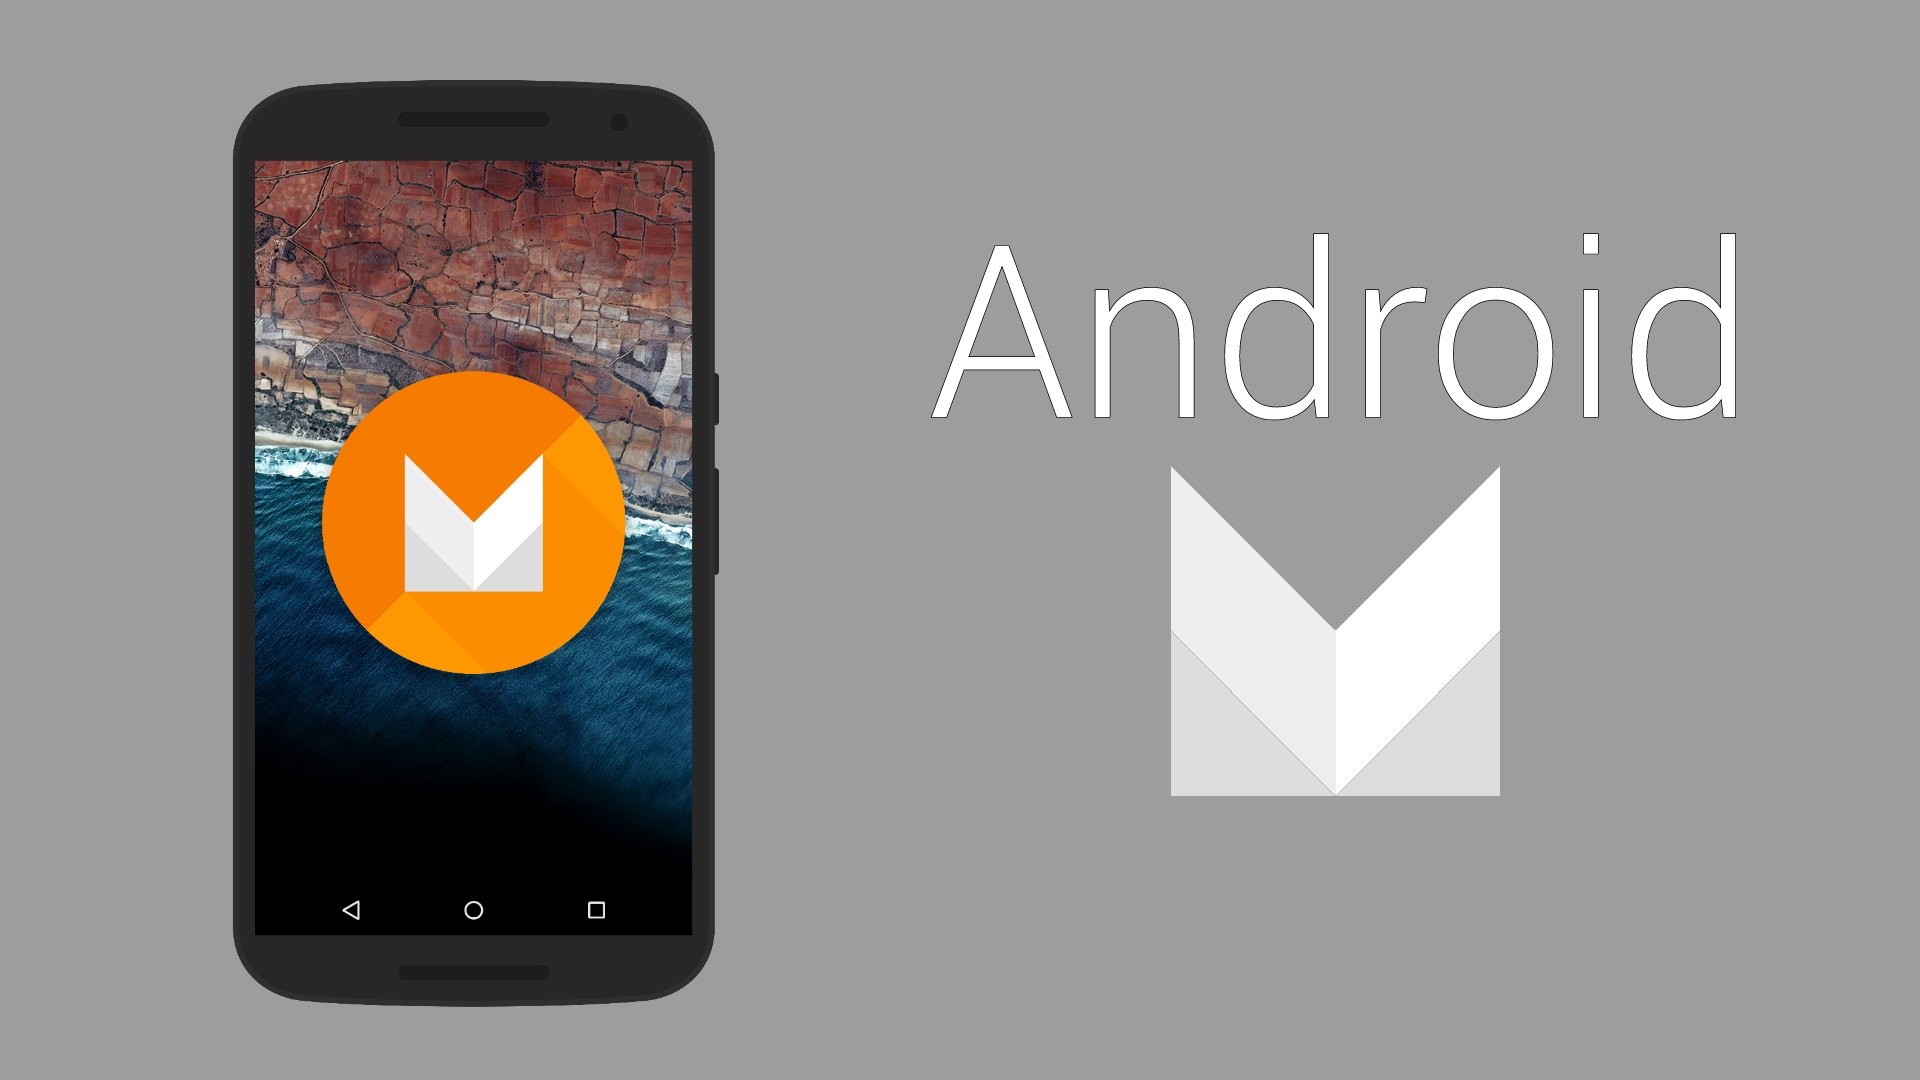 Android M: What You Need To Know